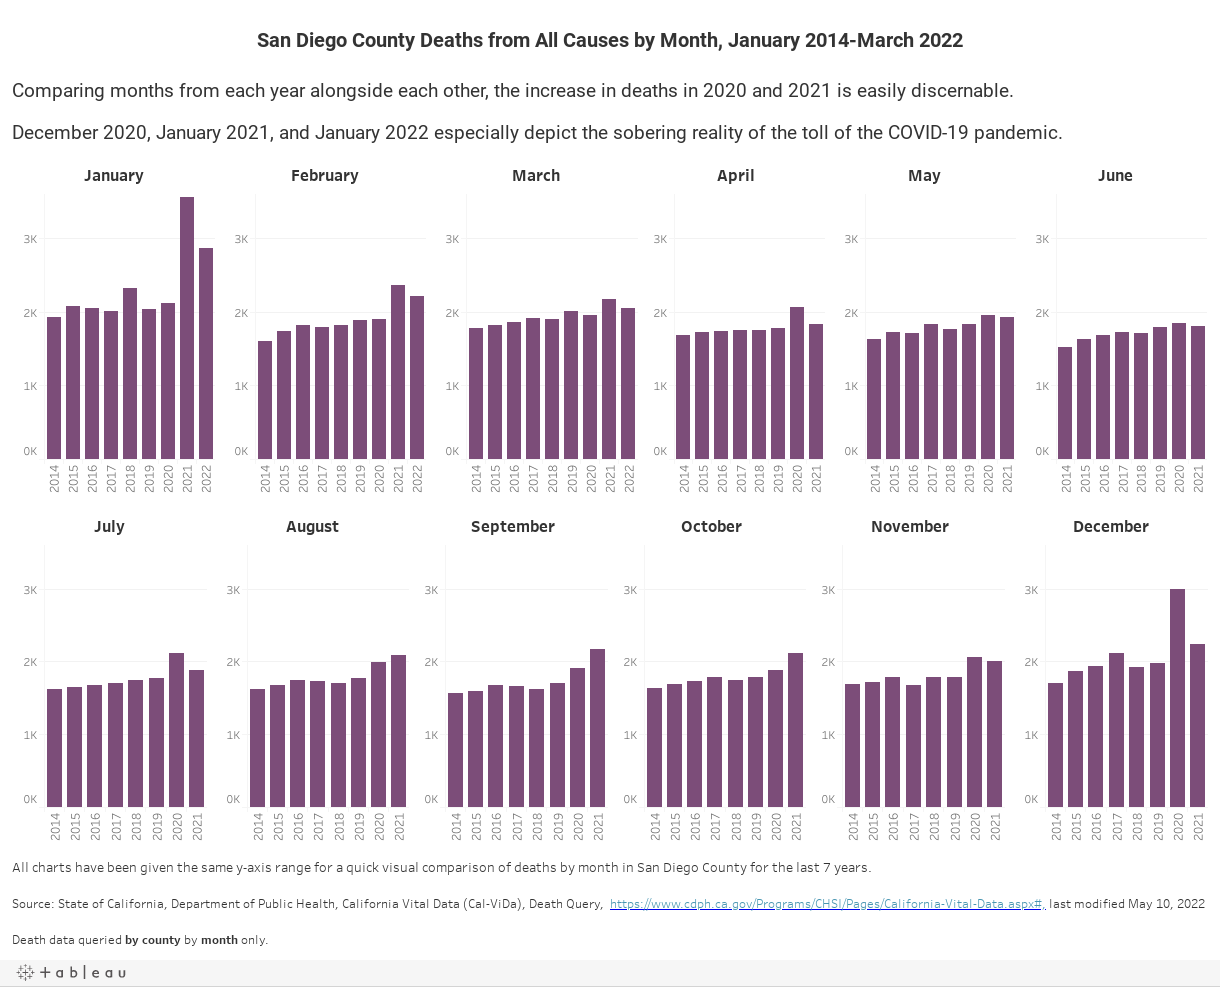 San Diego County Deaths from All Causes by Month, 2014-2020, January 2021